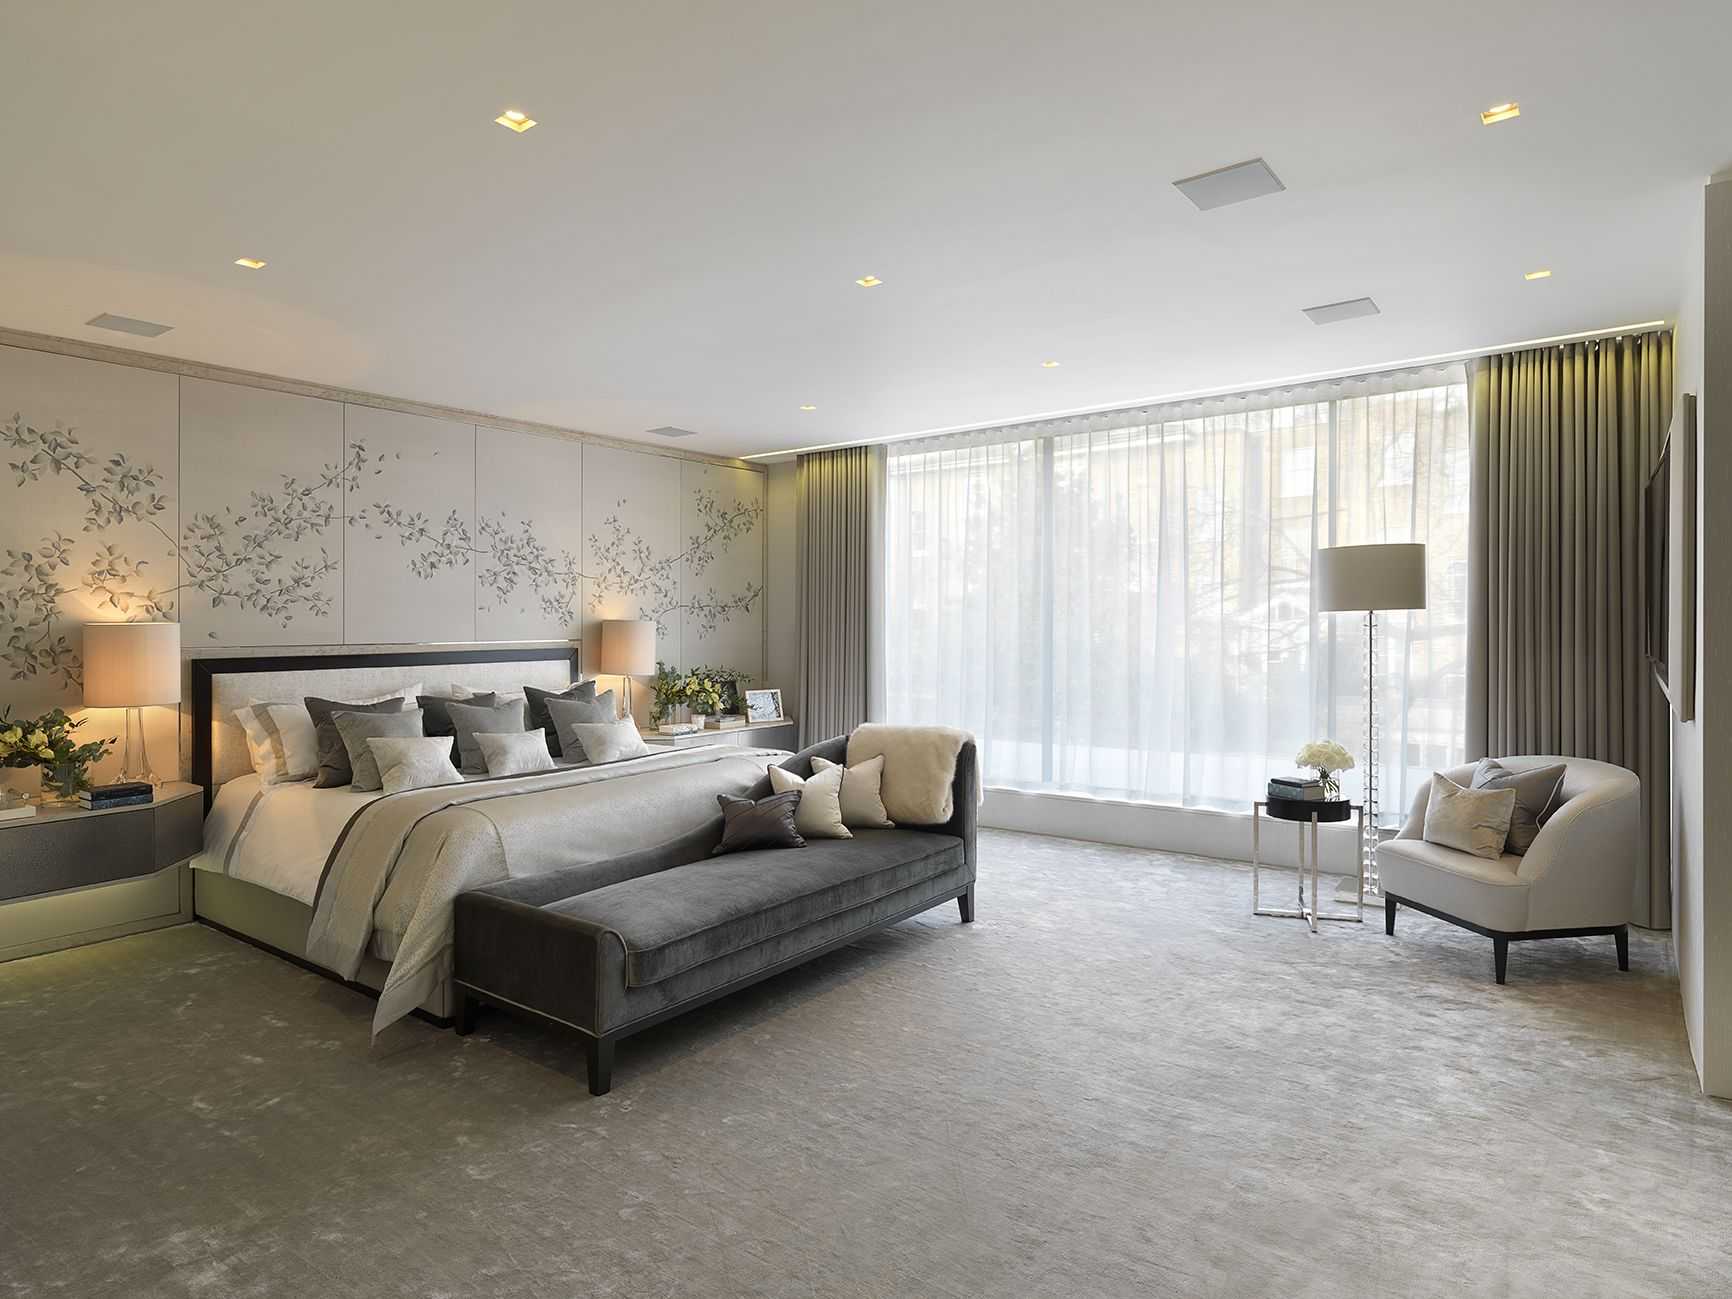 Master Bedroom Suite The Master Bedroom Suite Ashberg House Chelsea Designed By